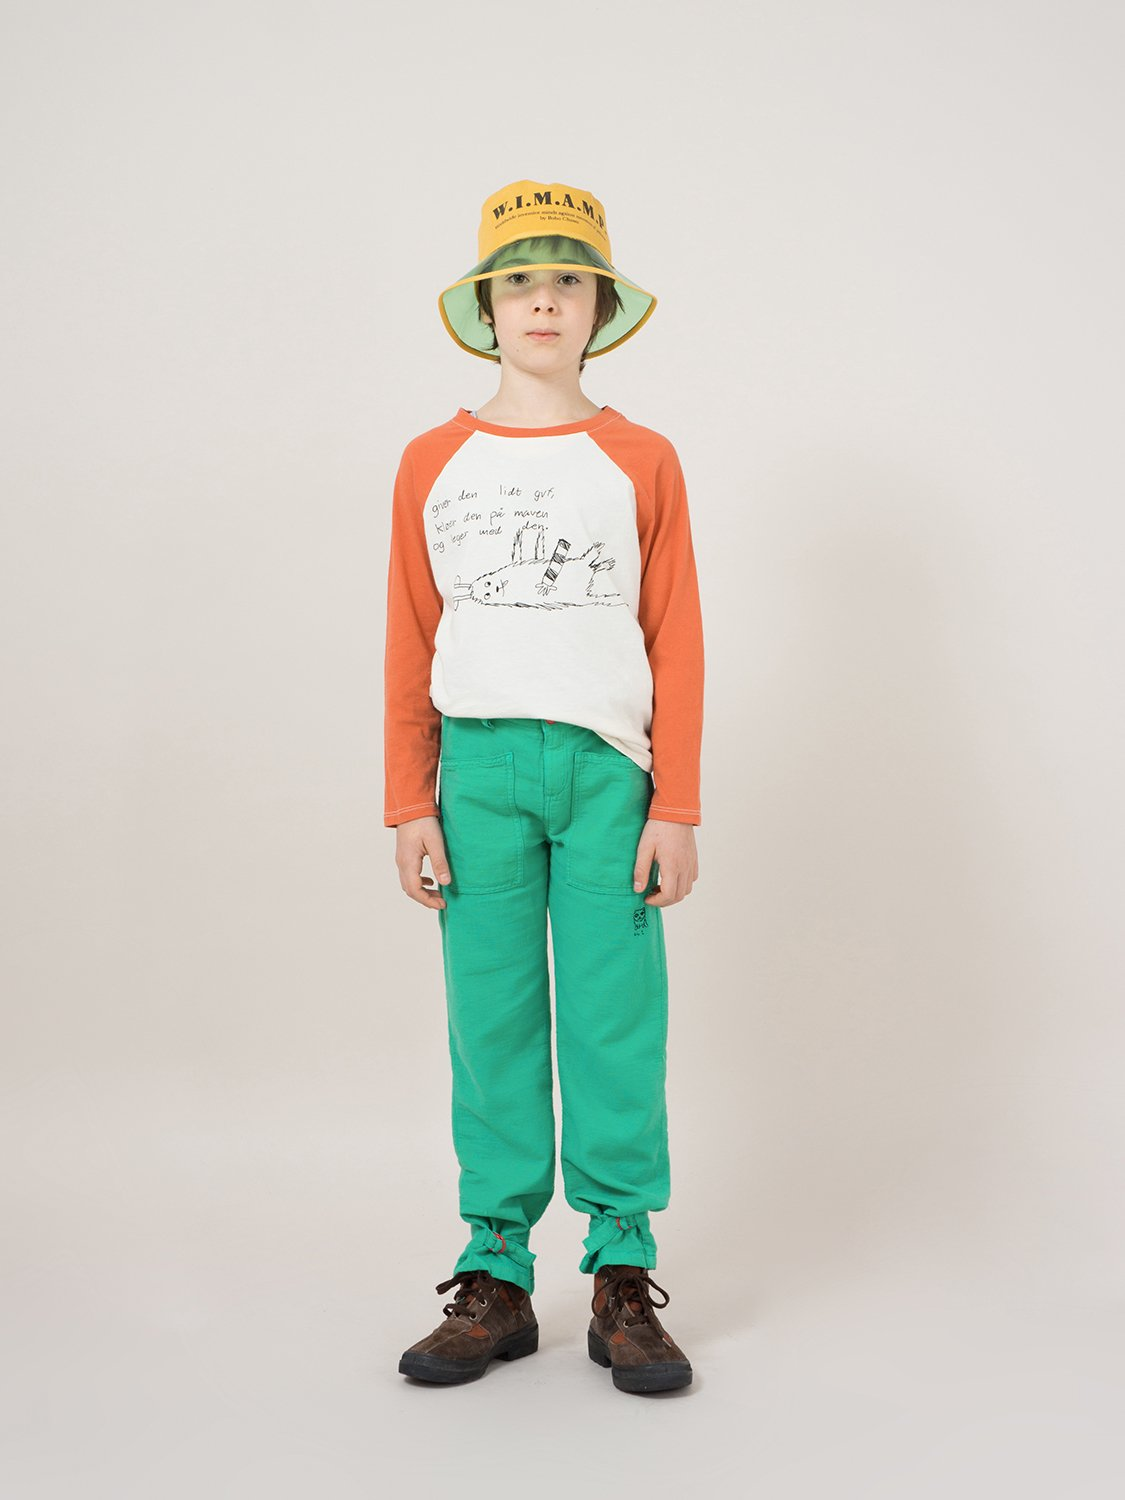 W.I.M.A.M.P. Green Trousers